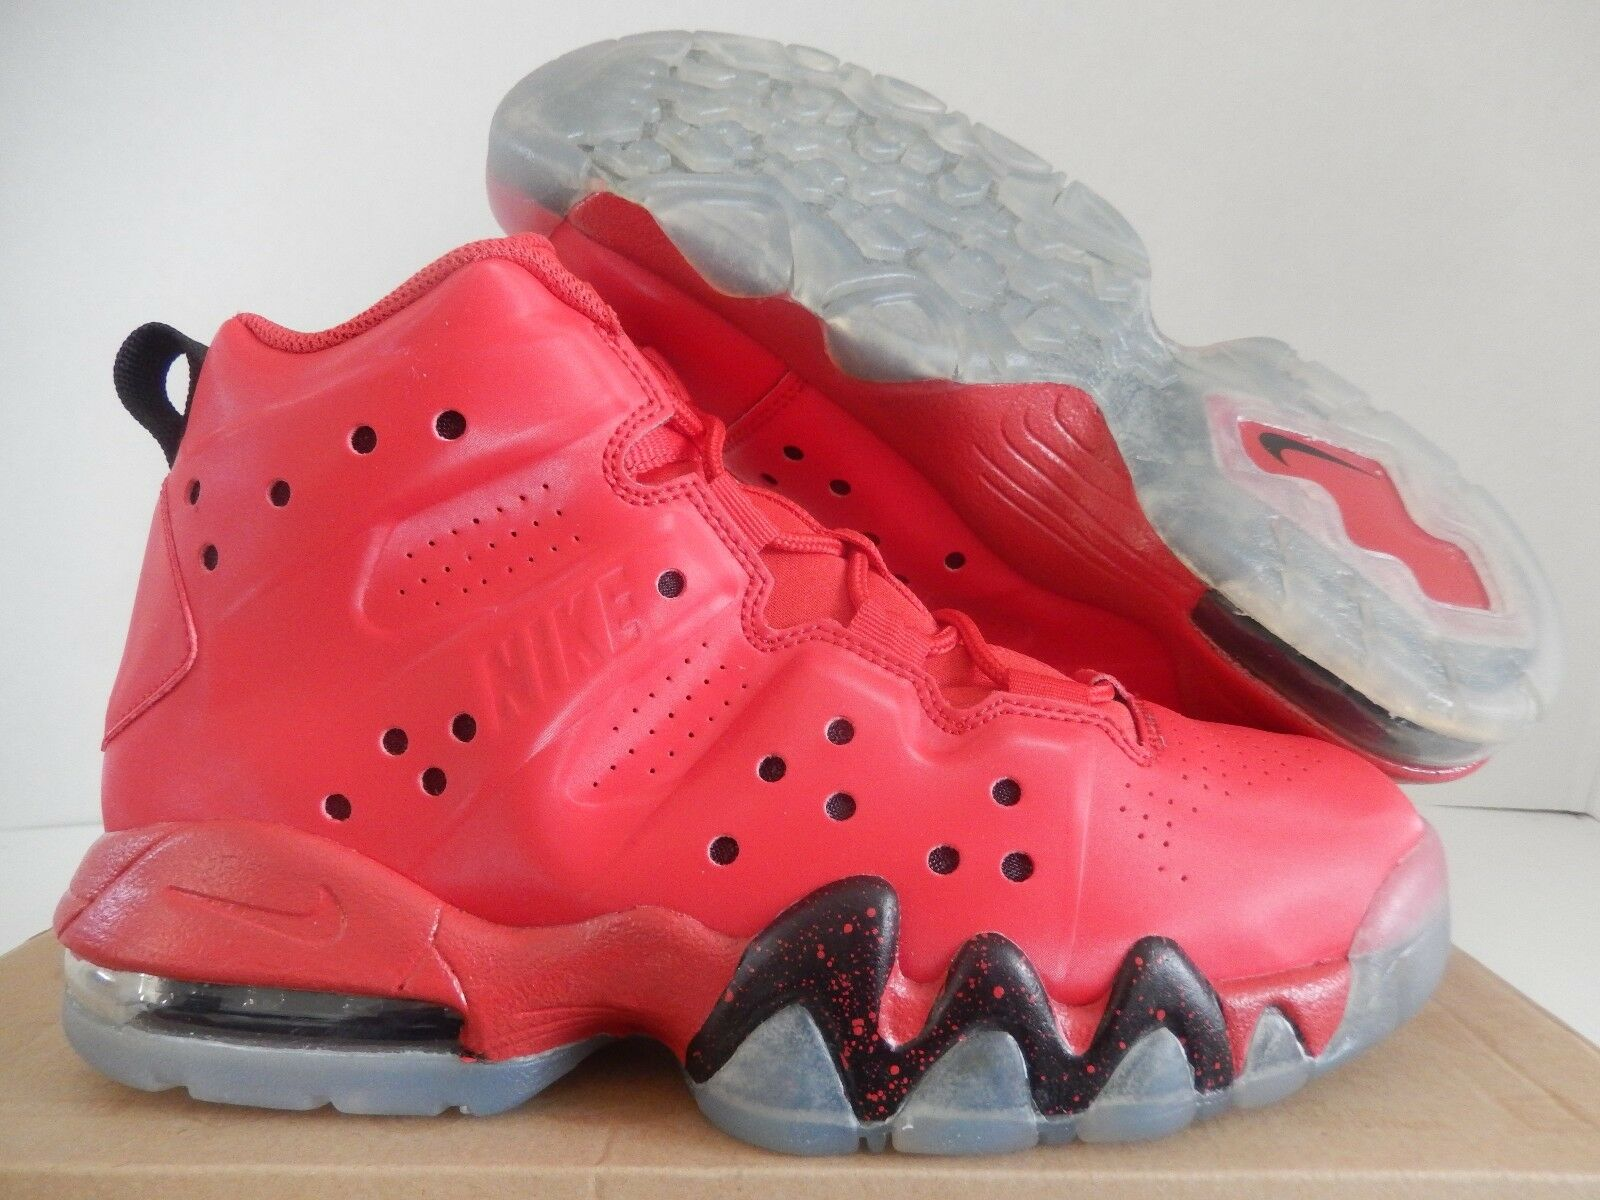 NIKE AIR MAX BARKLEY (GS) UNIVERSITY rouge SZ 5Y-Femme SZ 6.5 RARE [488245-660]